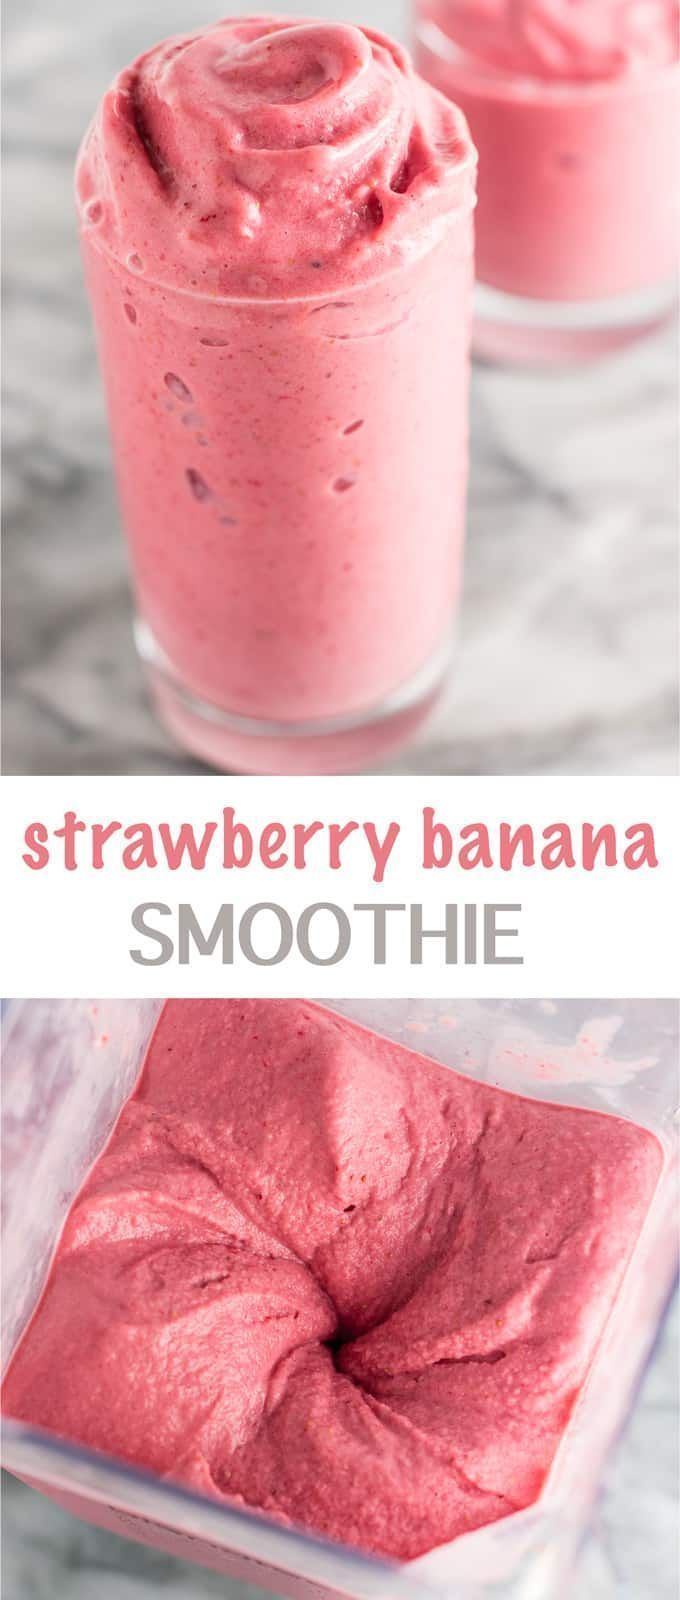 Healthy strawberry banana smoothie recipe with just 3 ingredients! This seriously tastes like ice cream - so good! #strawberrybananasmoothie #healthy #healthysmoothie #breakfast #dessert #healthystrawberrybananasmoothie